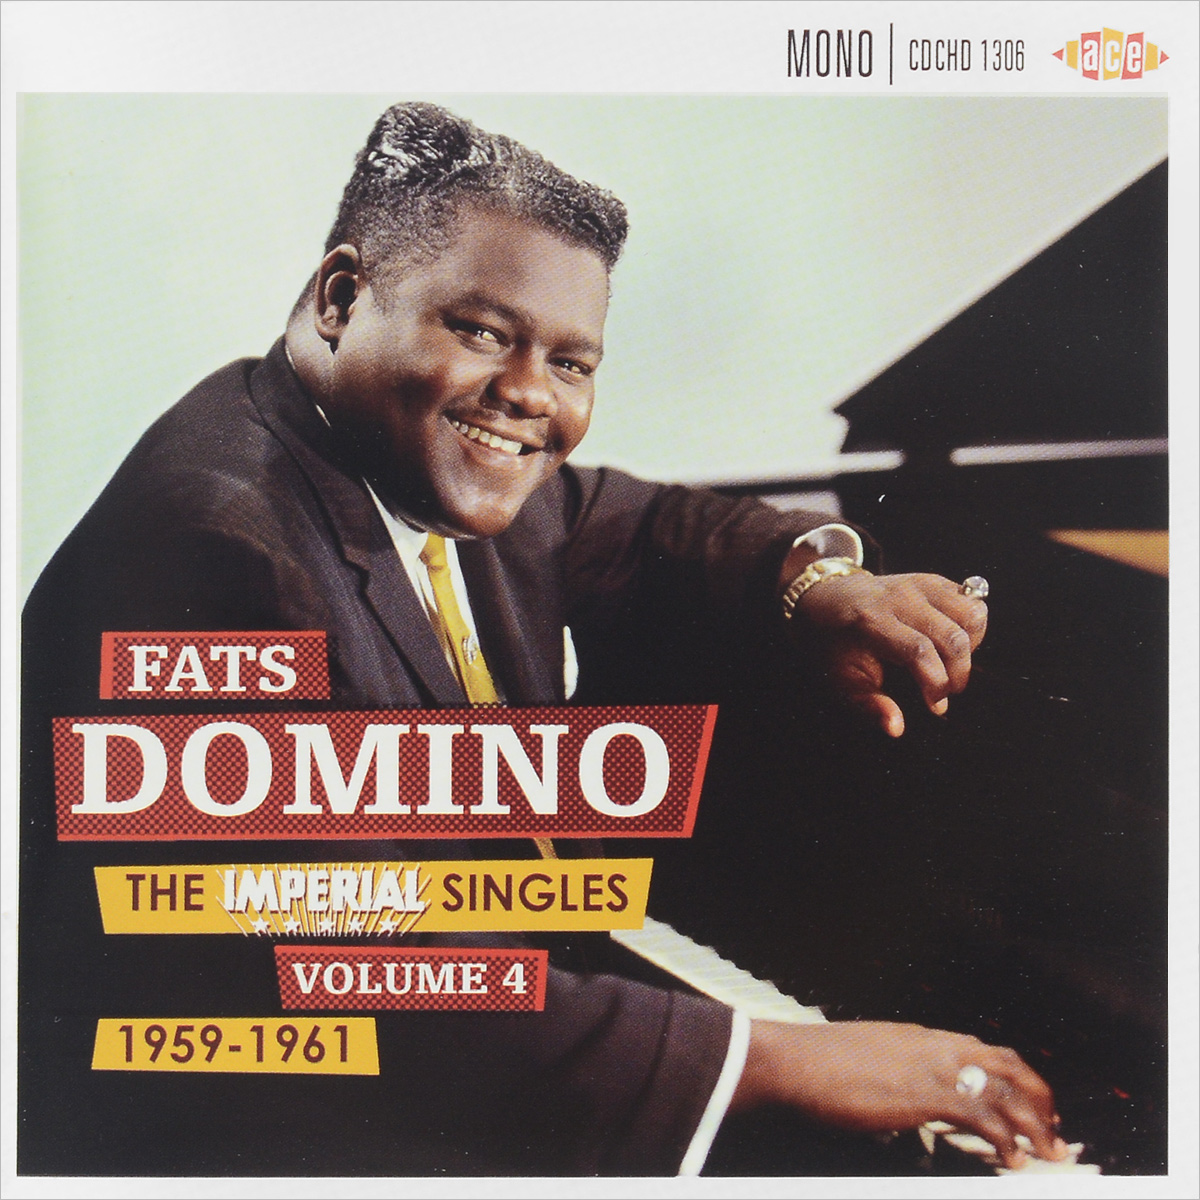 Fats Domino. The Imperial Singles. Volume 4. 1959 - 1961